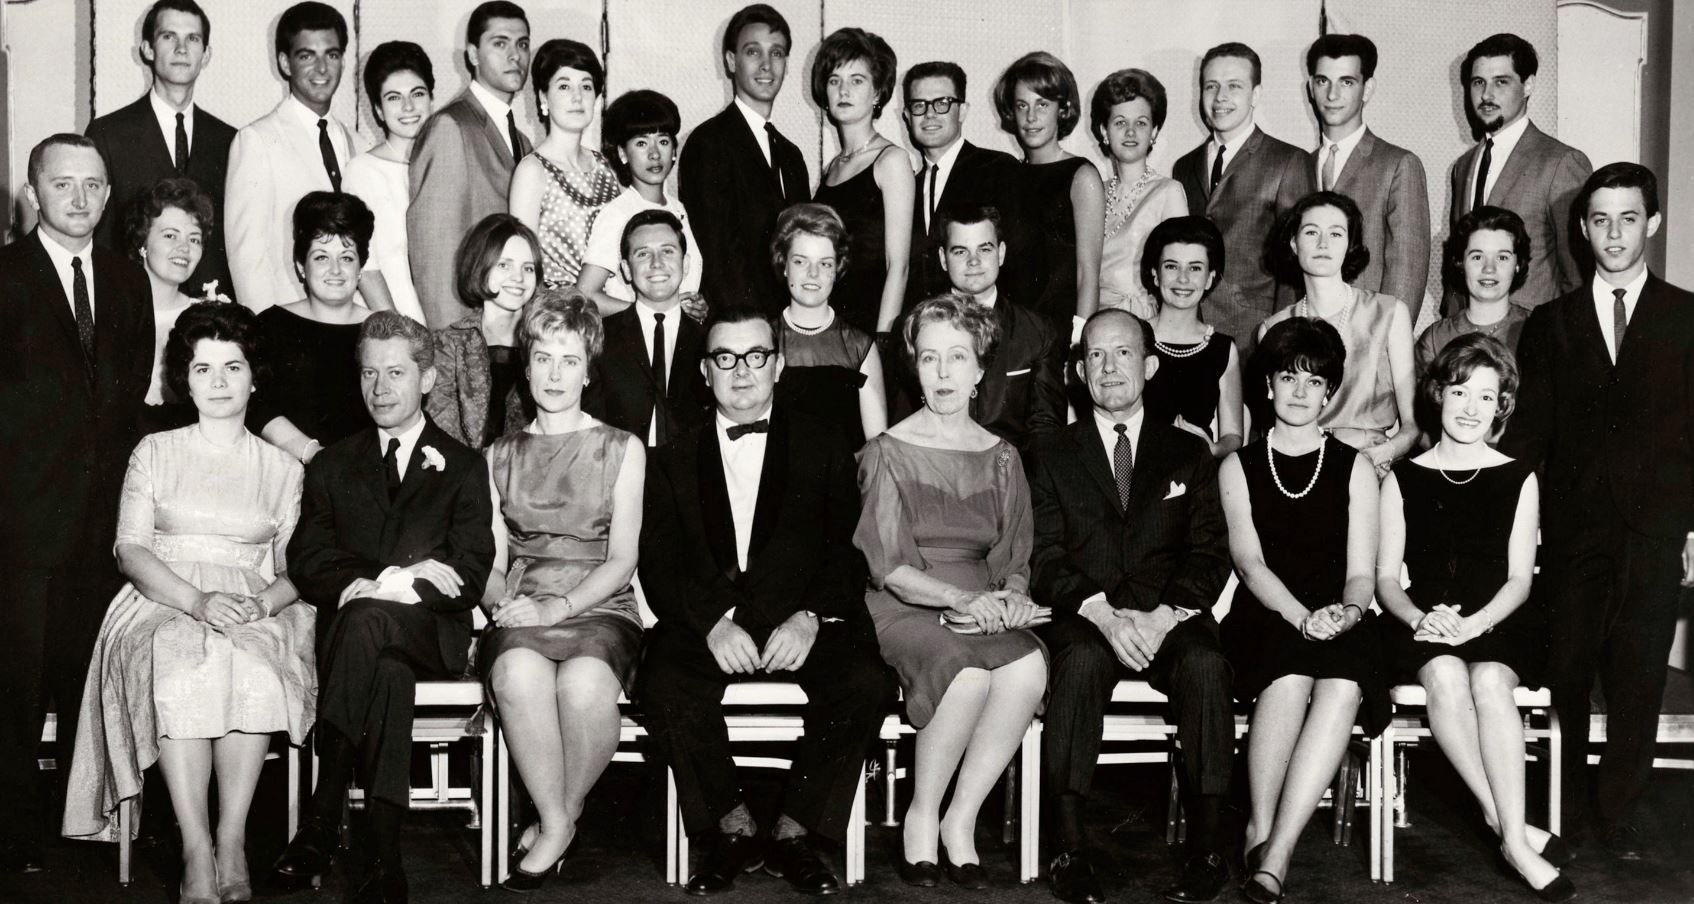 """NYSID Class of 1963: The commencement ceremony and reception that took place at the St. Regis Hotel on May 31, 1968 was a swanky affair. Distinguished architect and guest speaker  James R. LaMantia  told graduates """"you should be joyful about your decision to pursue interior design and thankful that you have found within yourselves the will to make it. The degree to which you embrace your objective is the degree to which you will succeed."""""""